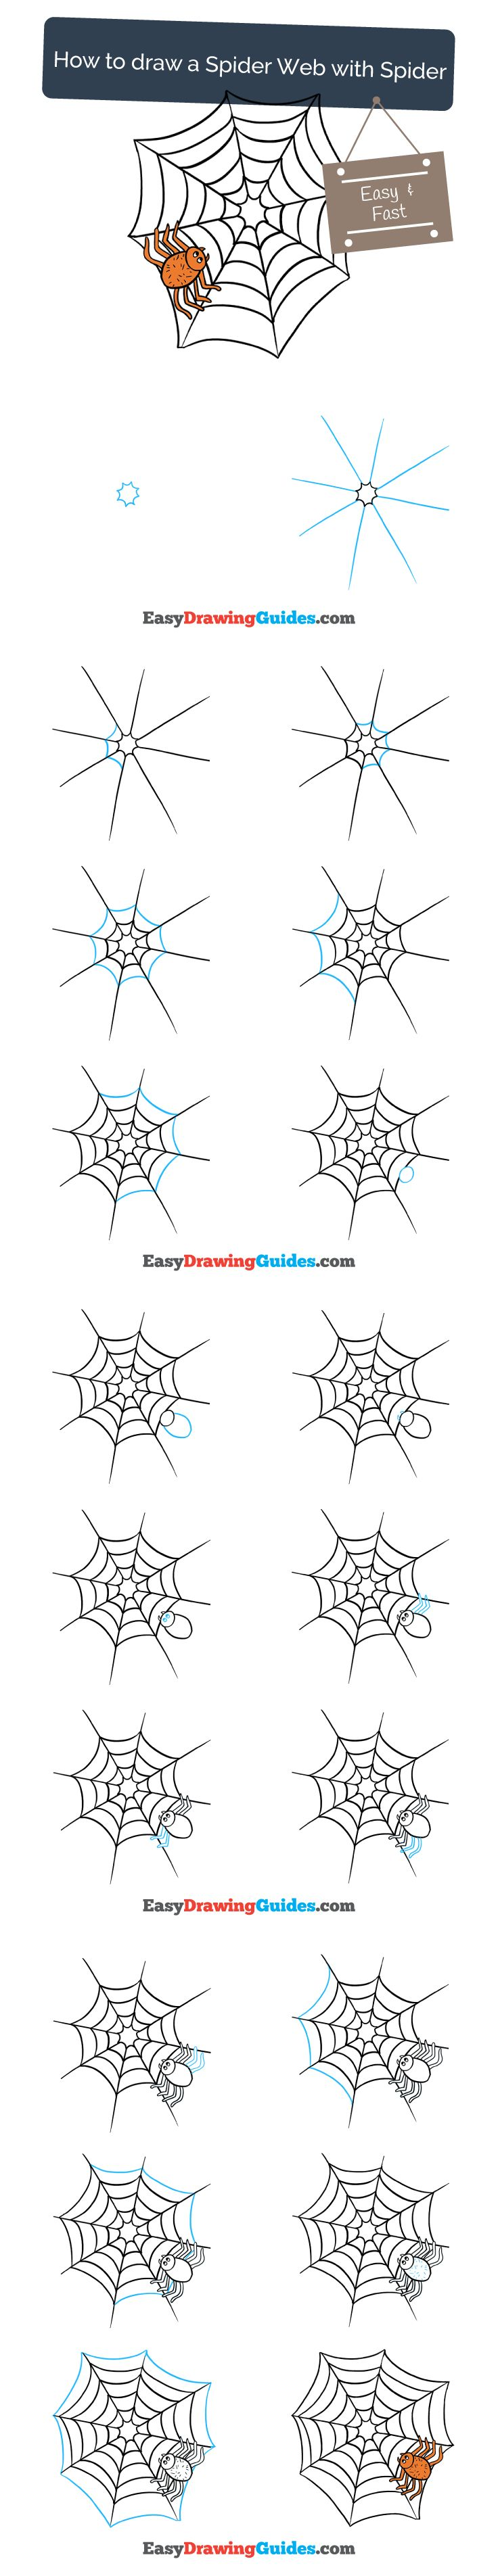 Learn How to Draw a Spider Web: Easy Step-by-Step Drawing Tutorial for Kids and Beginners. #spiderweb #drawing #tutorial. See the full tutorial at https://easydrawingguides.com/draw-spider-web-spider/